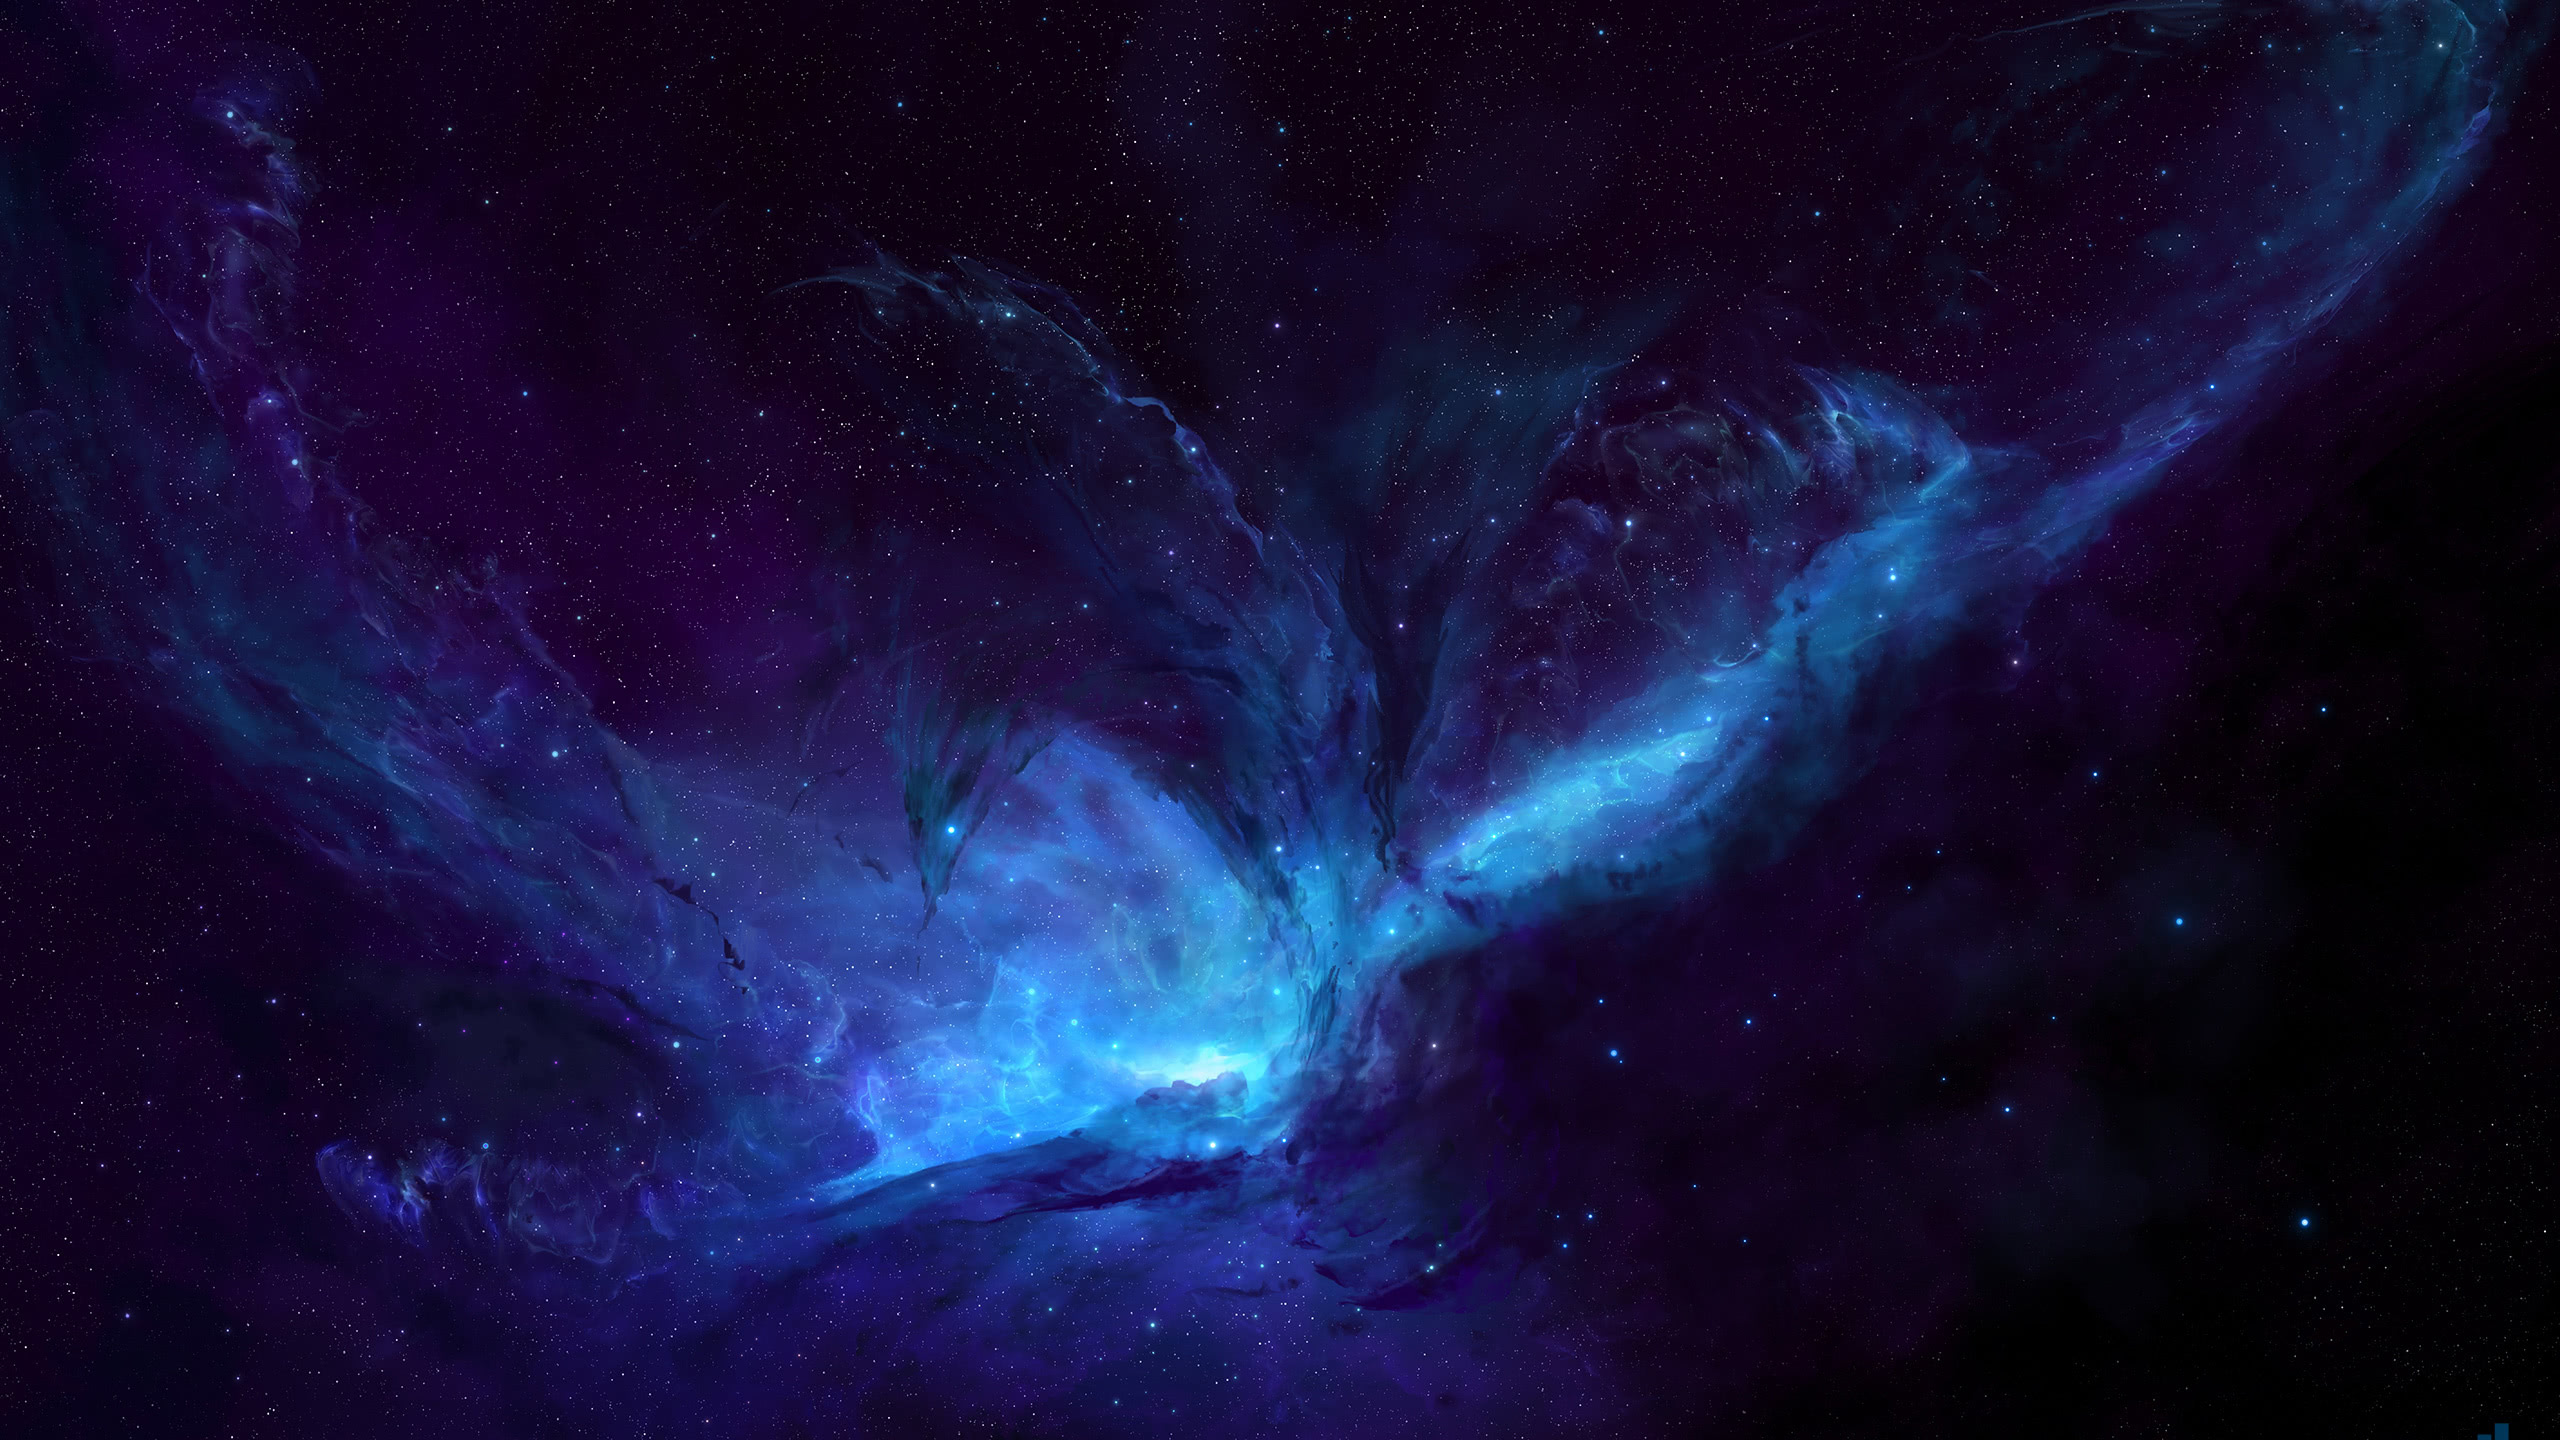 Nebula Blue WQHD 1440P Wallpaper | Pixelz